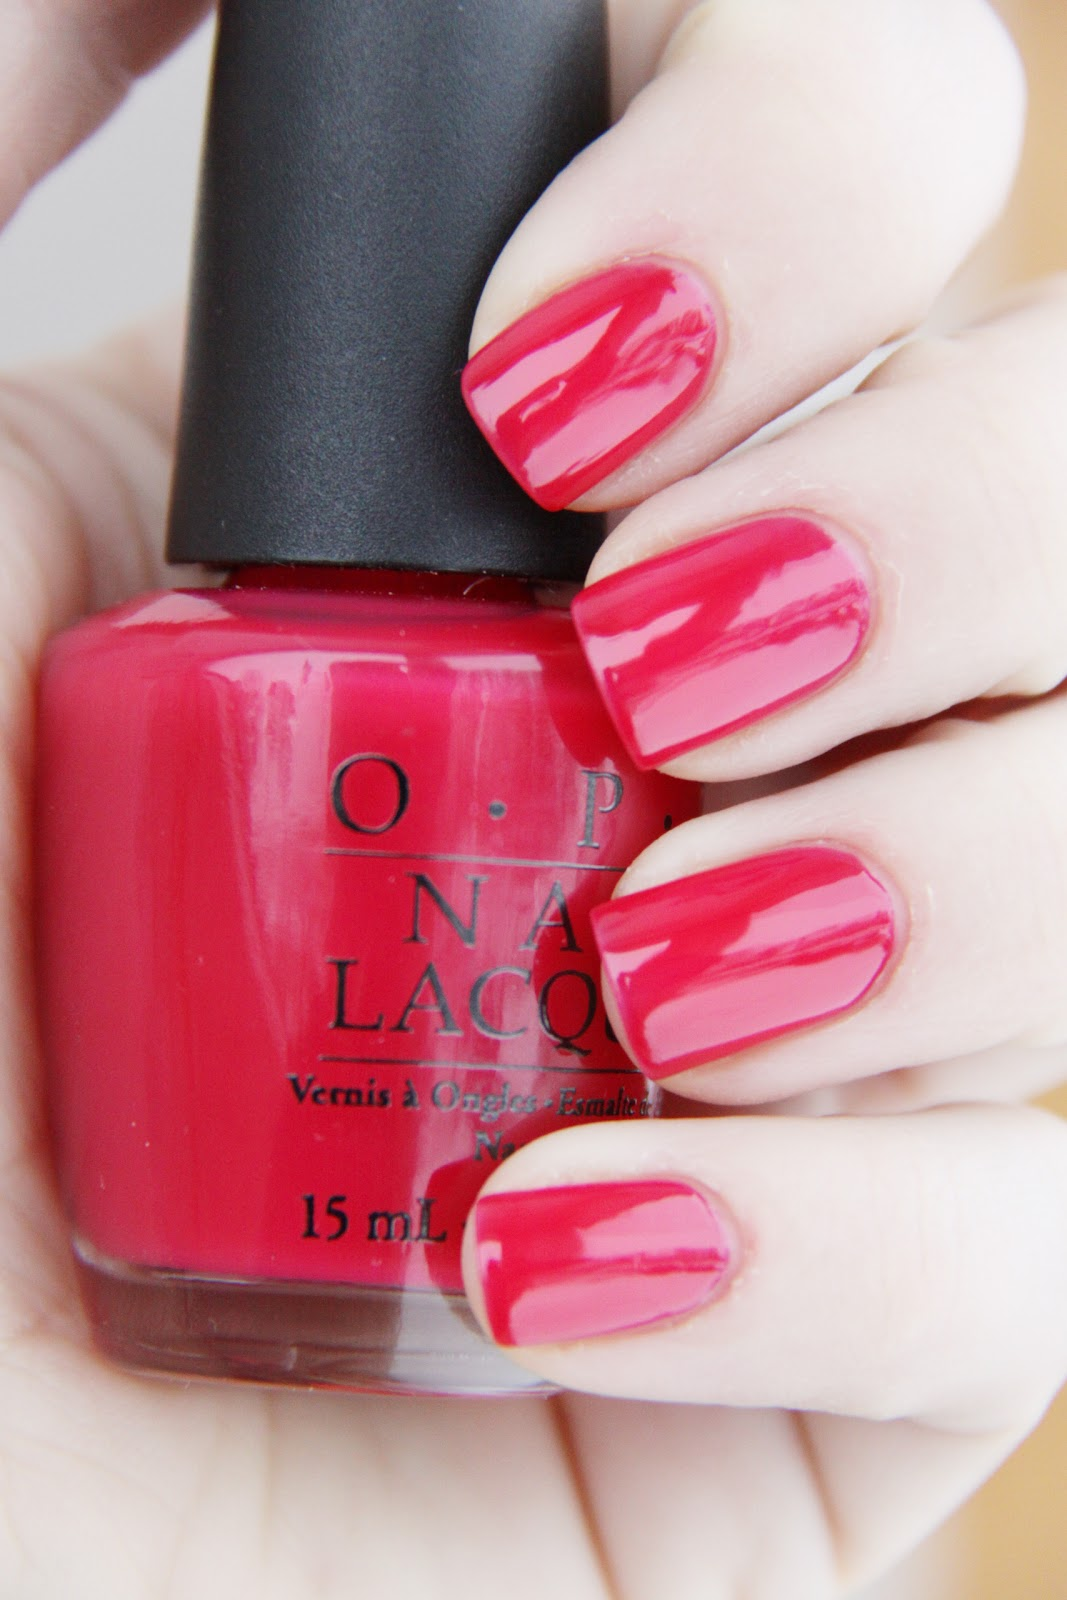 OPI+Too+hot+pink+to+hold+%25C3%25A9m.JPG